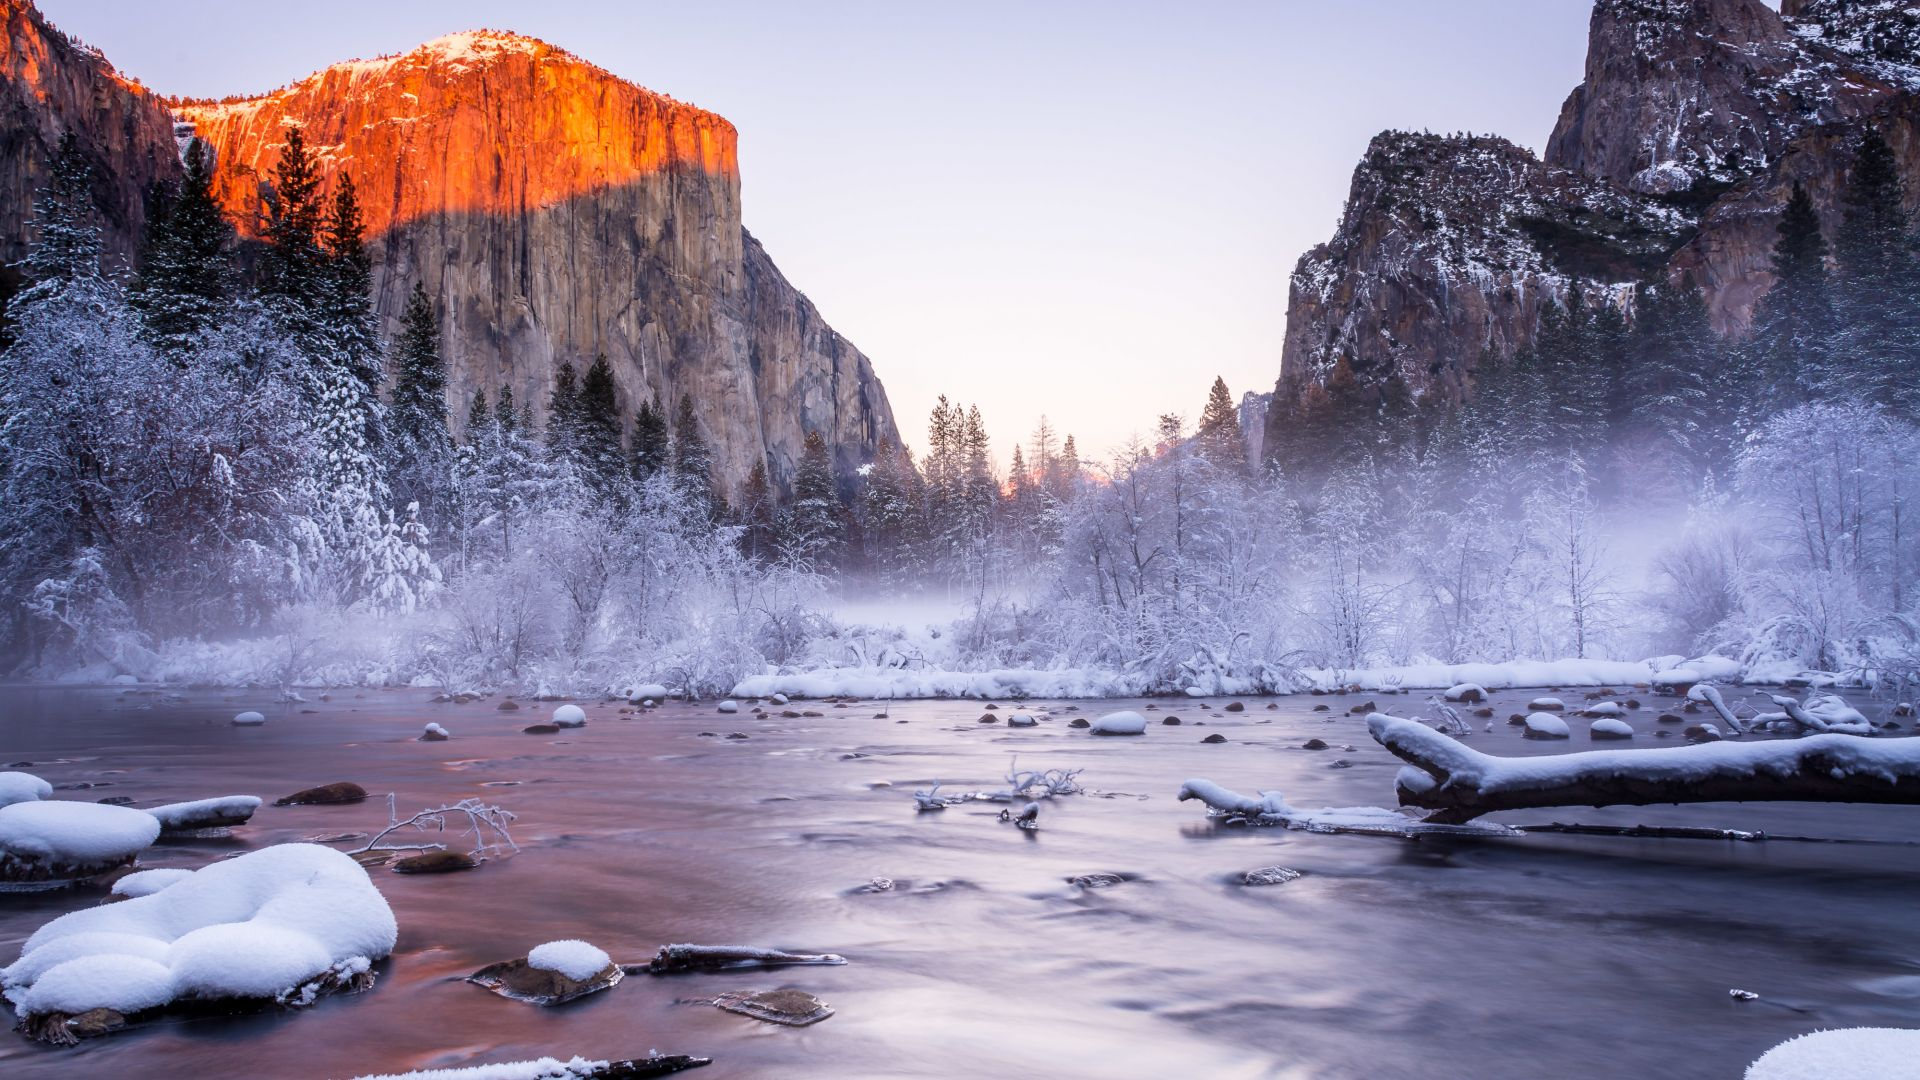 Yosemite, 5k, 4k wallpaper, National Park, California, USA, winter, tourism, travel, lake, mountain (horizontal)